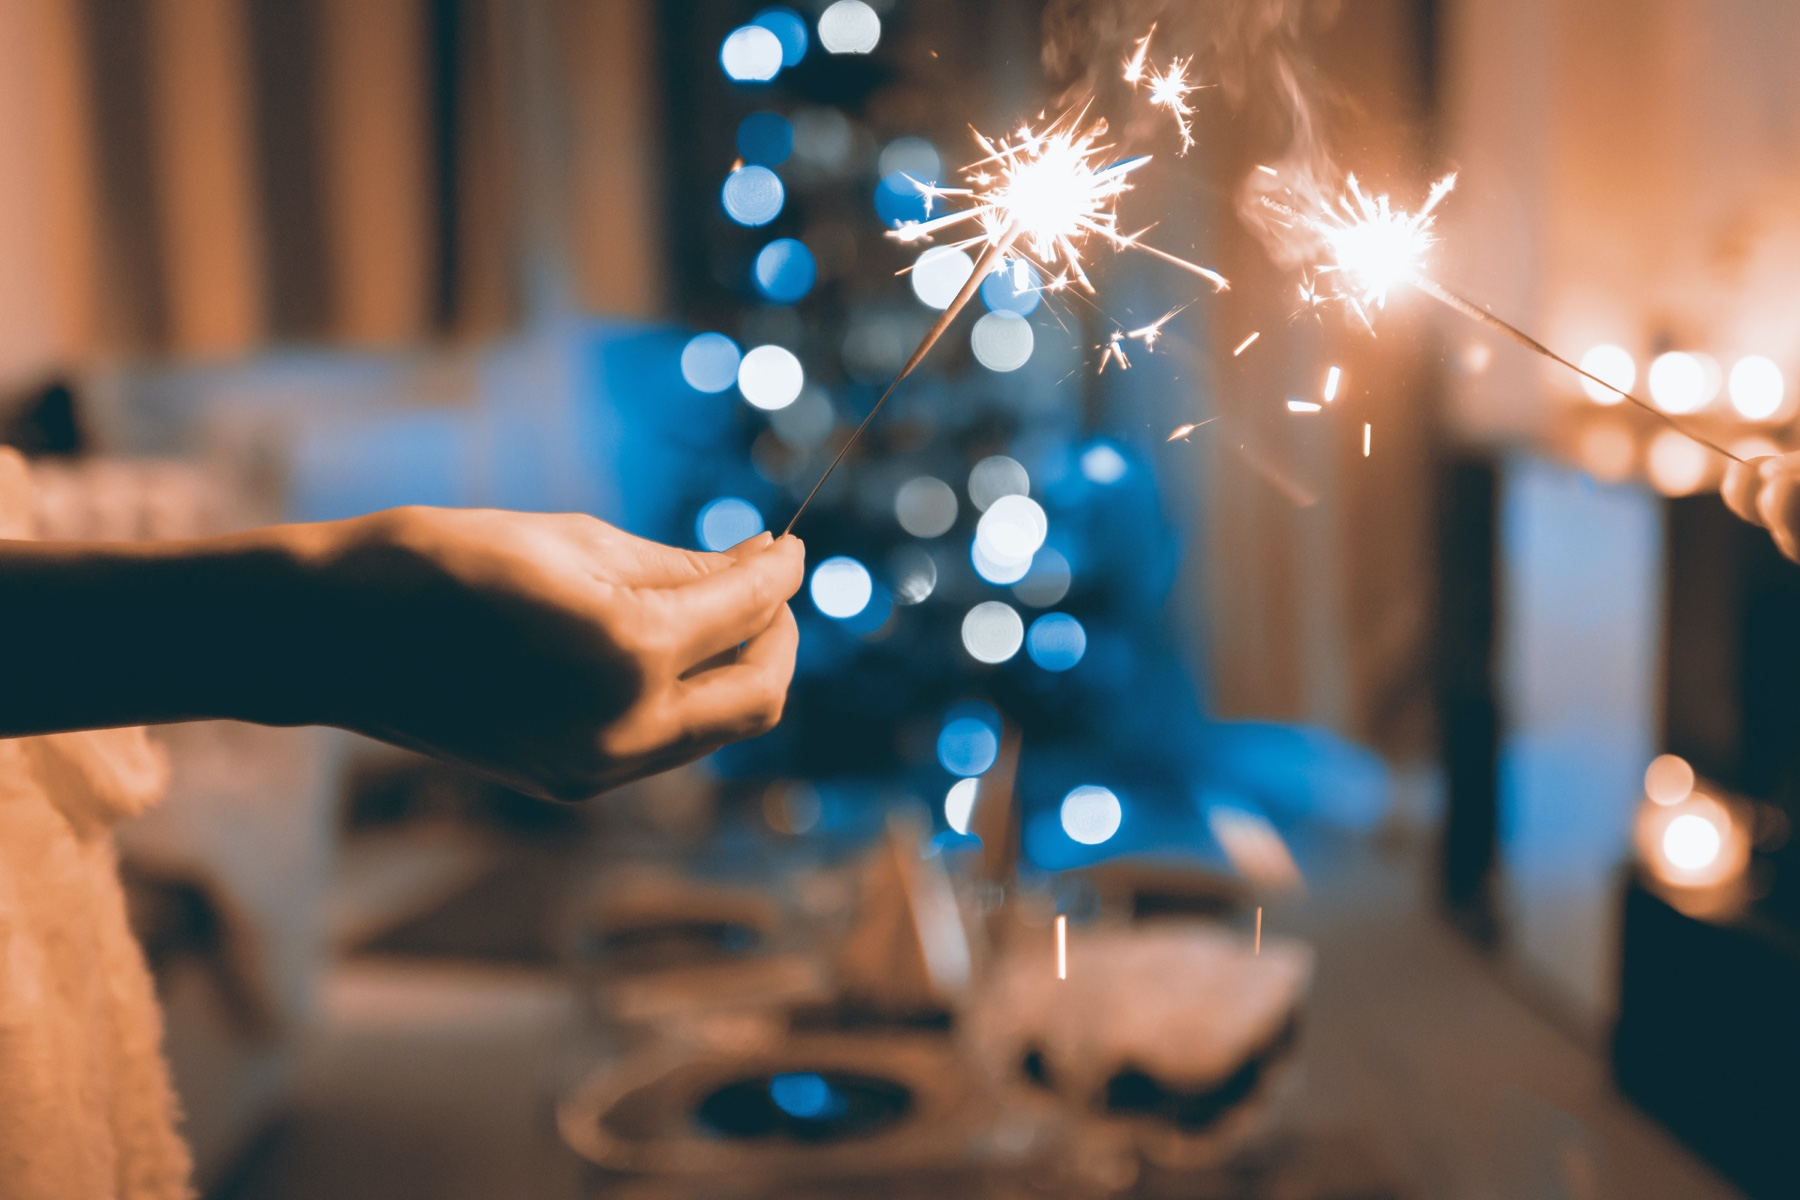 Close up of hands holding sparklers